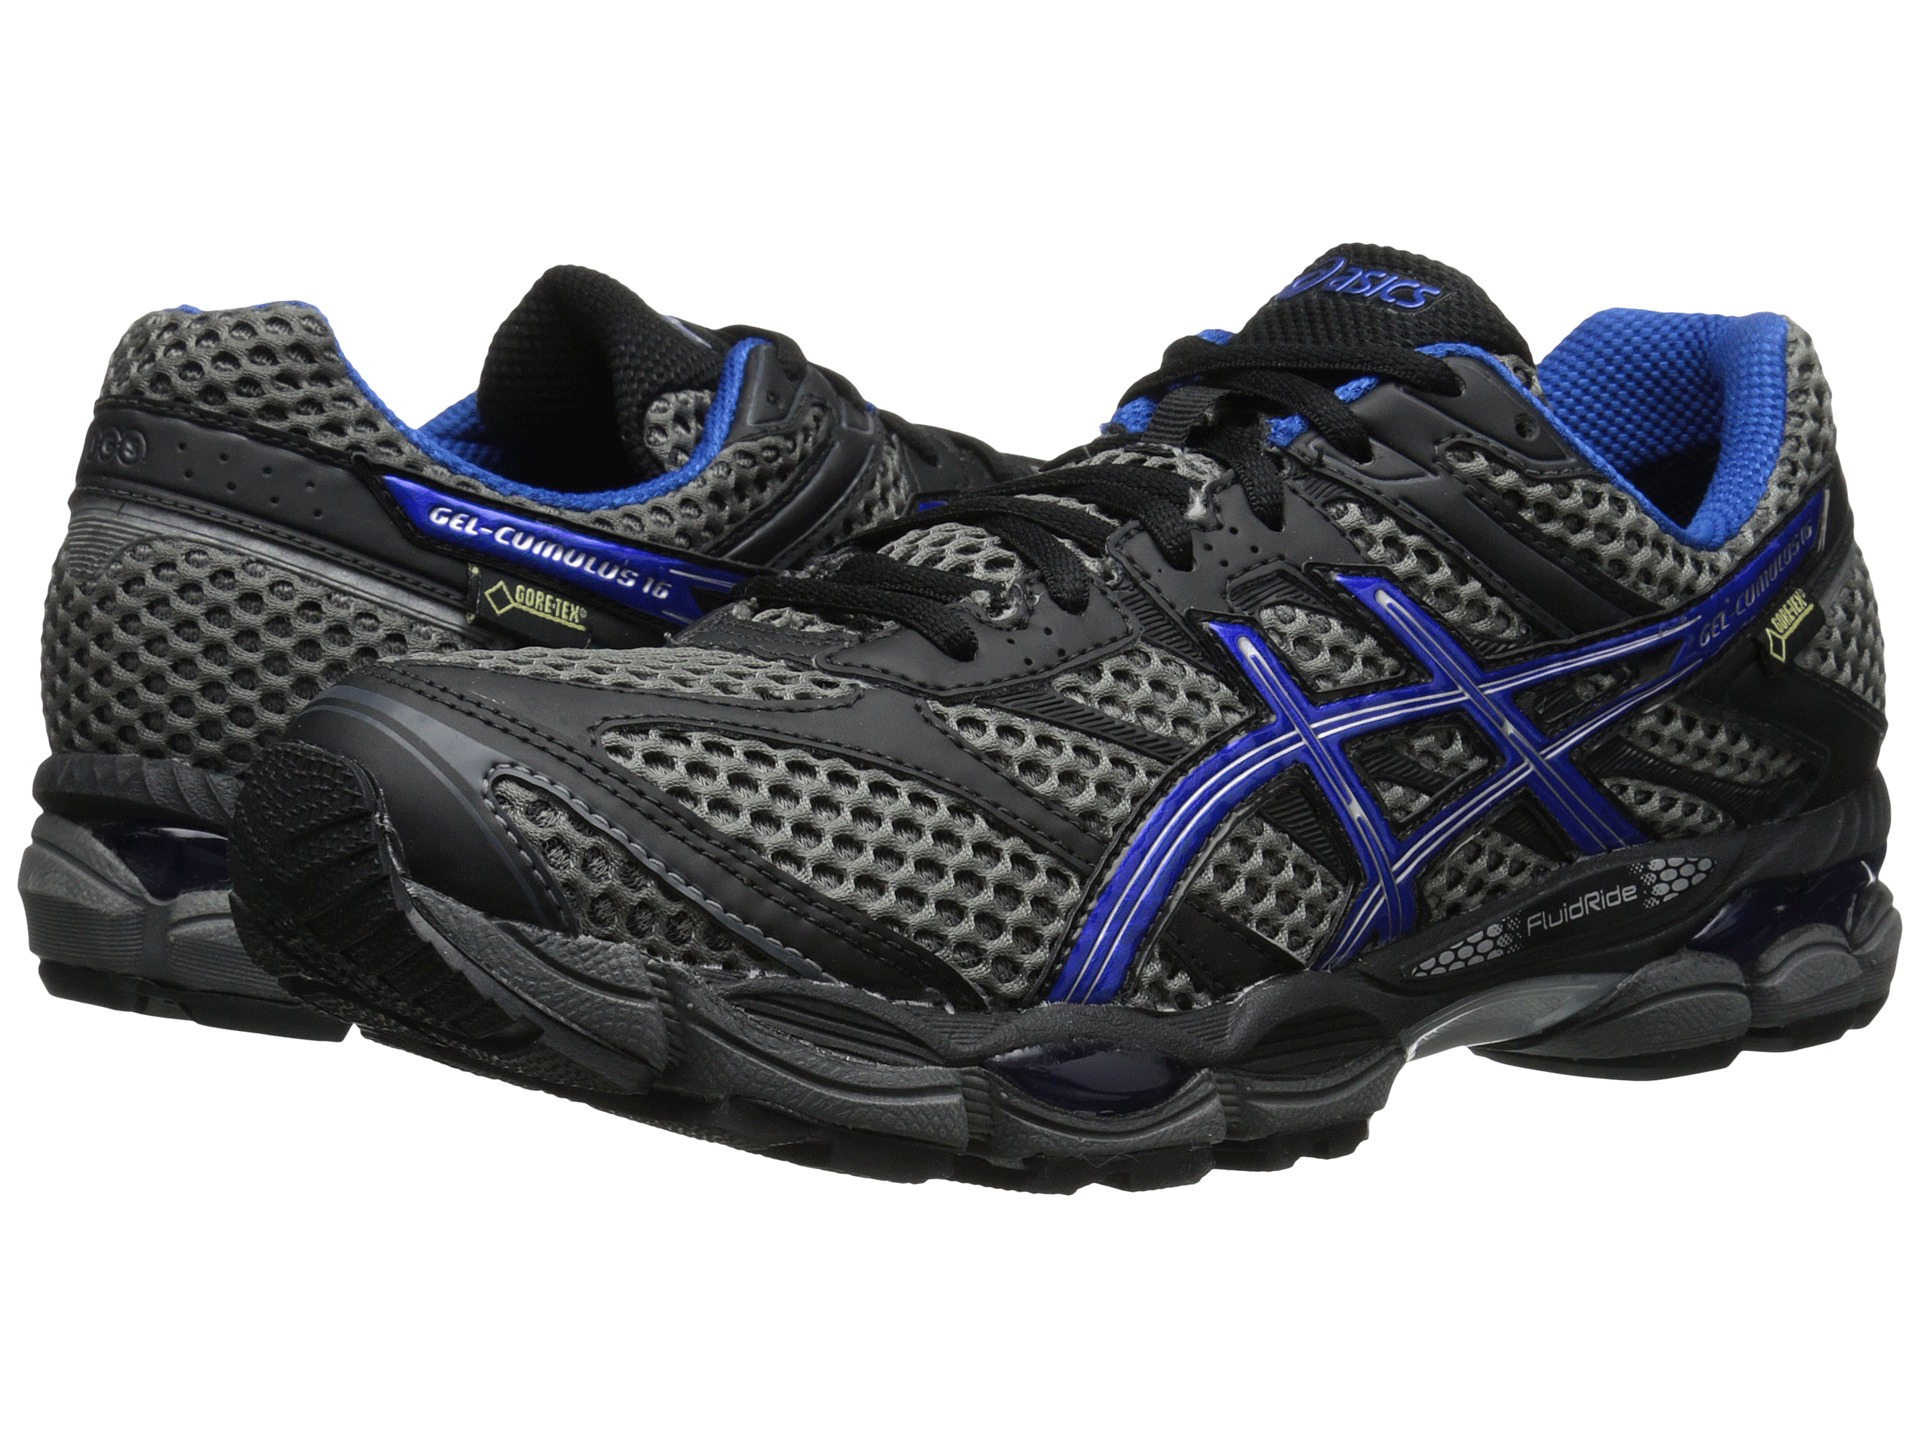 asics gel cumulus 16 gtx shoes shipped free at zappos. Black Bedroom Furniture Sets. Home Design Ideas